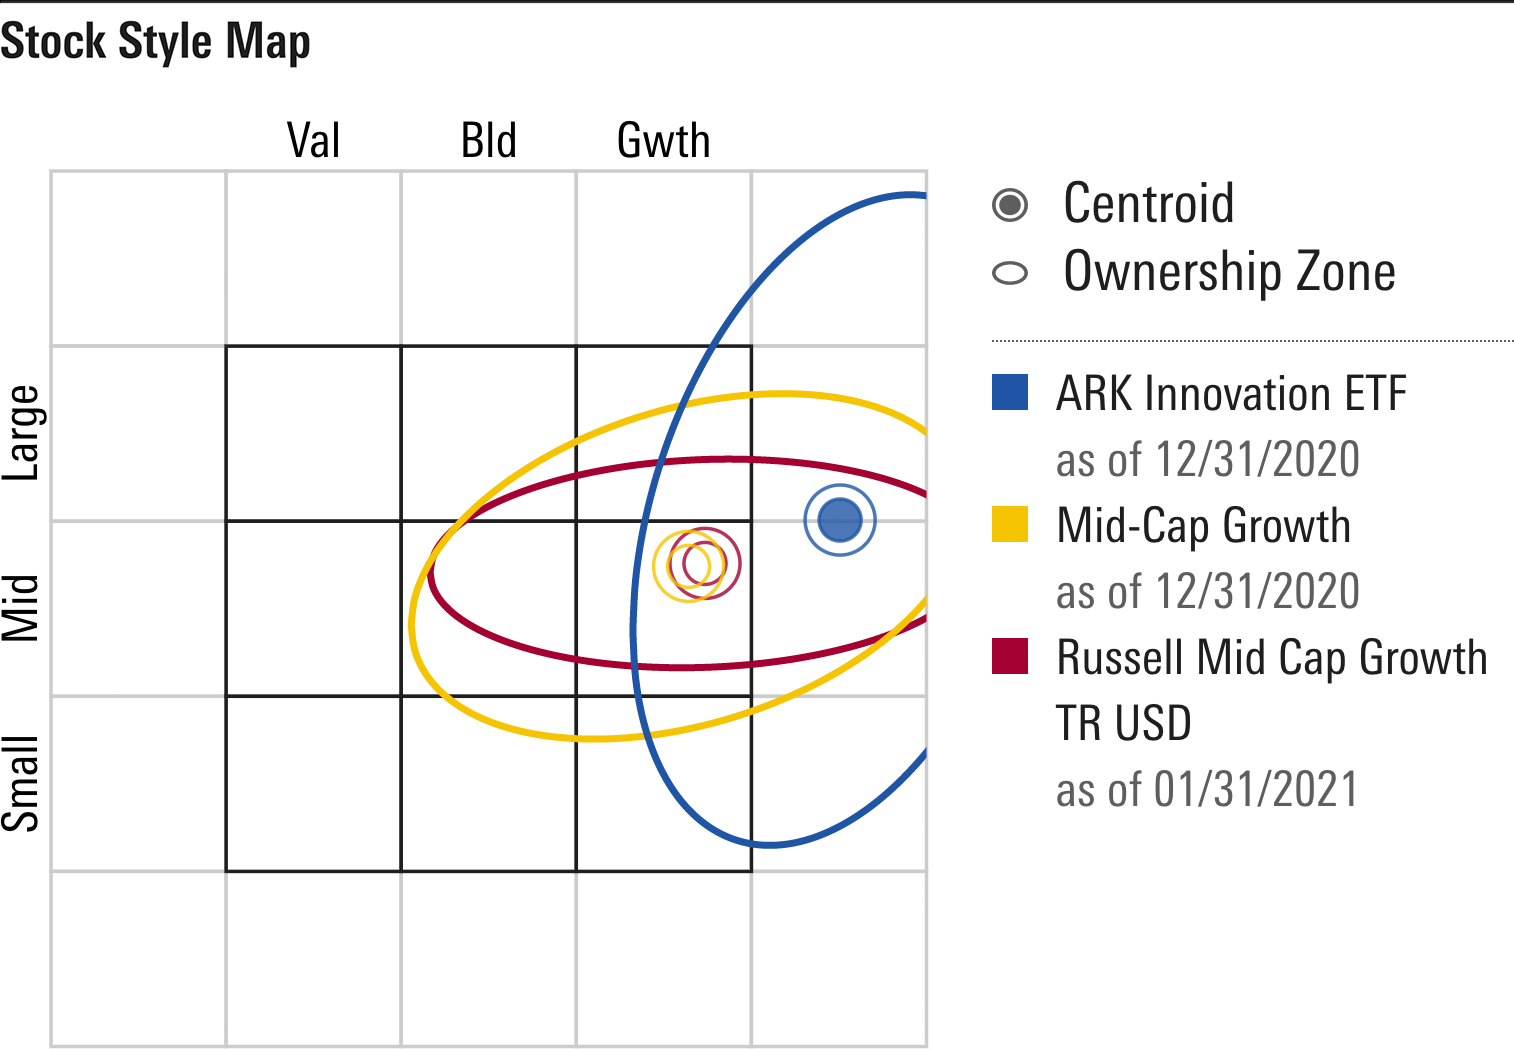 Stock style map